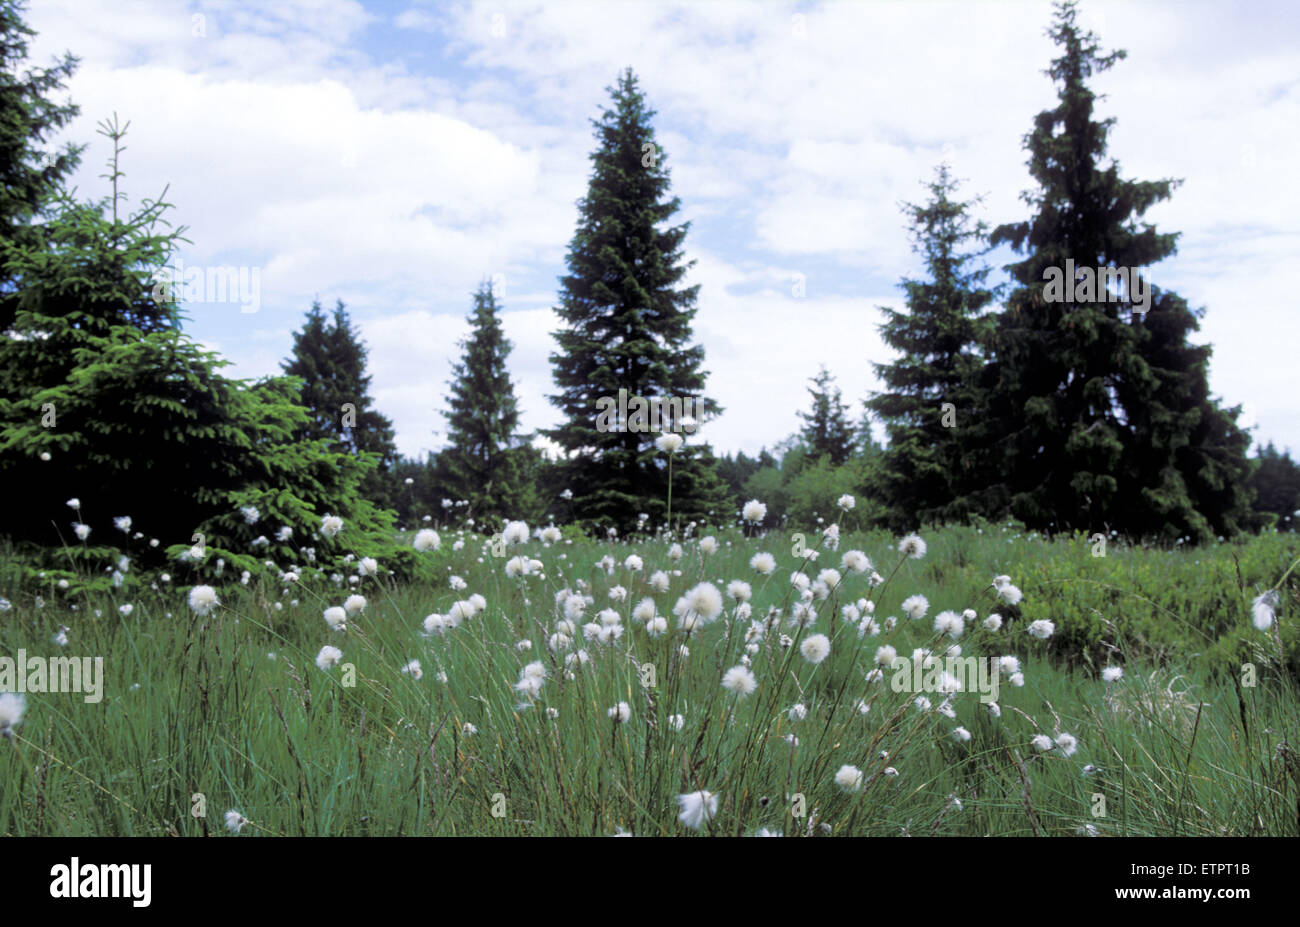 BEL, Belgium, Eastbelgium, Hautes Fagnes, Hohes Venn, cotton grass and spruces.  BEL, Belgien, Ostbelgien, Hohes - Stock Image